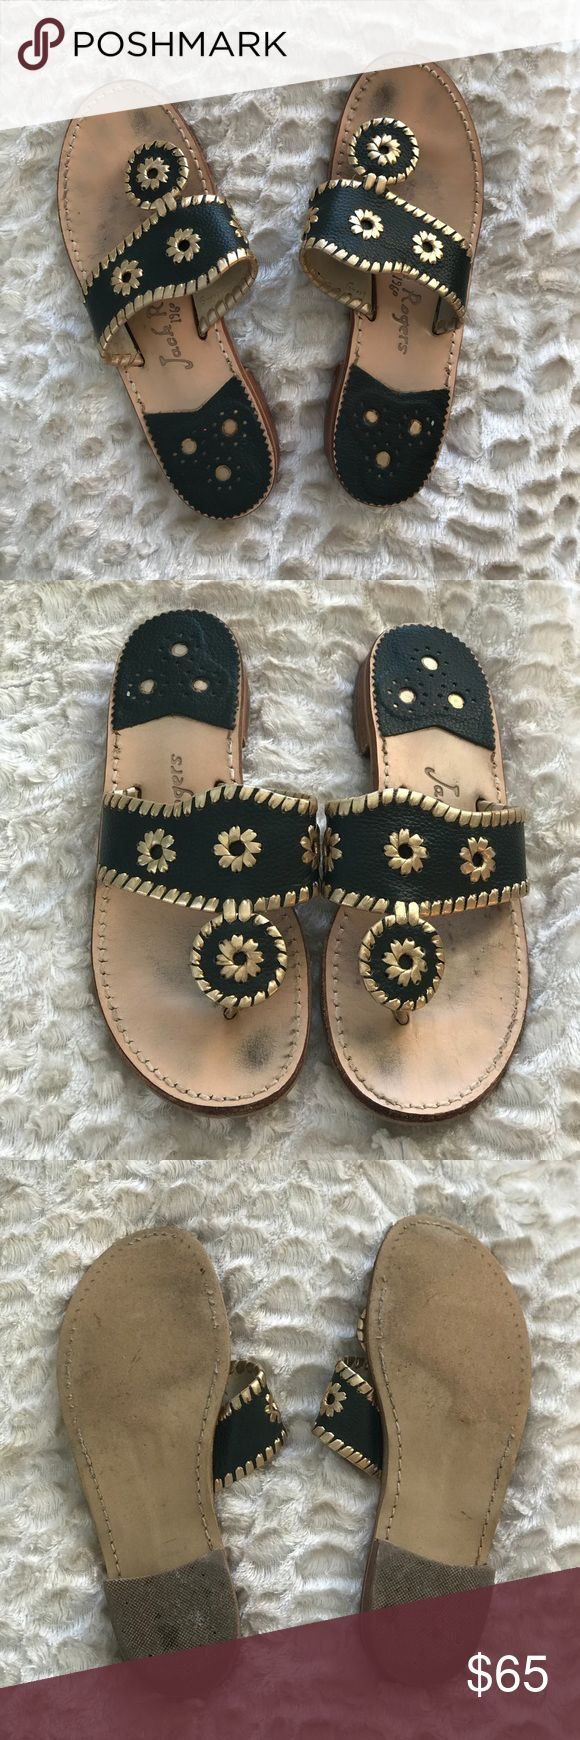 Jack Rogers sandals Jack Rogers Naples sandals in great condition, barley worn! All stitching and design like new. Jack Rogers Shoes Sandals